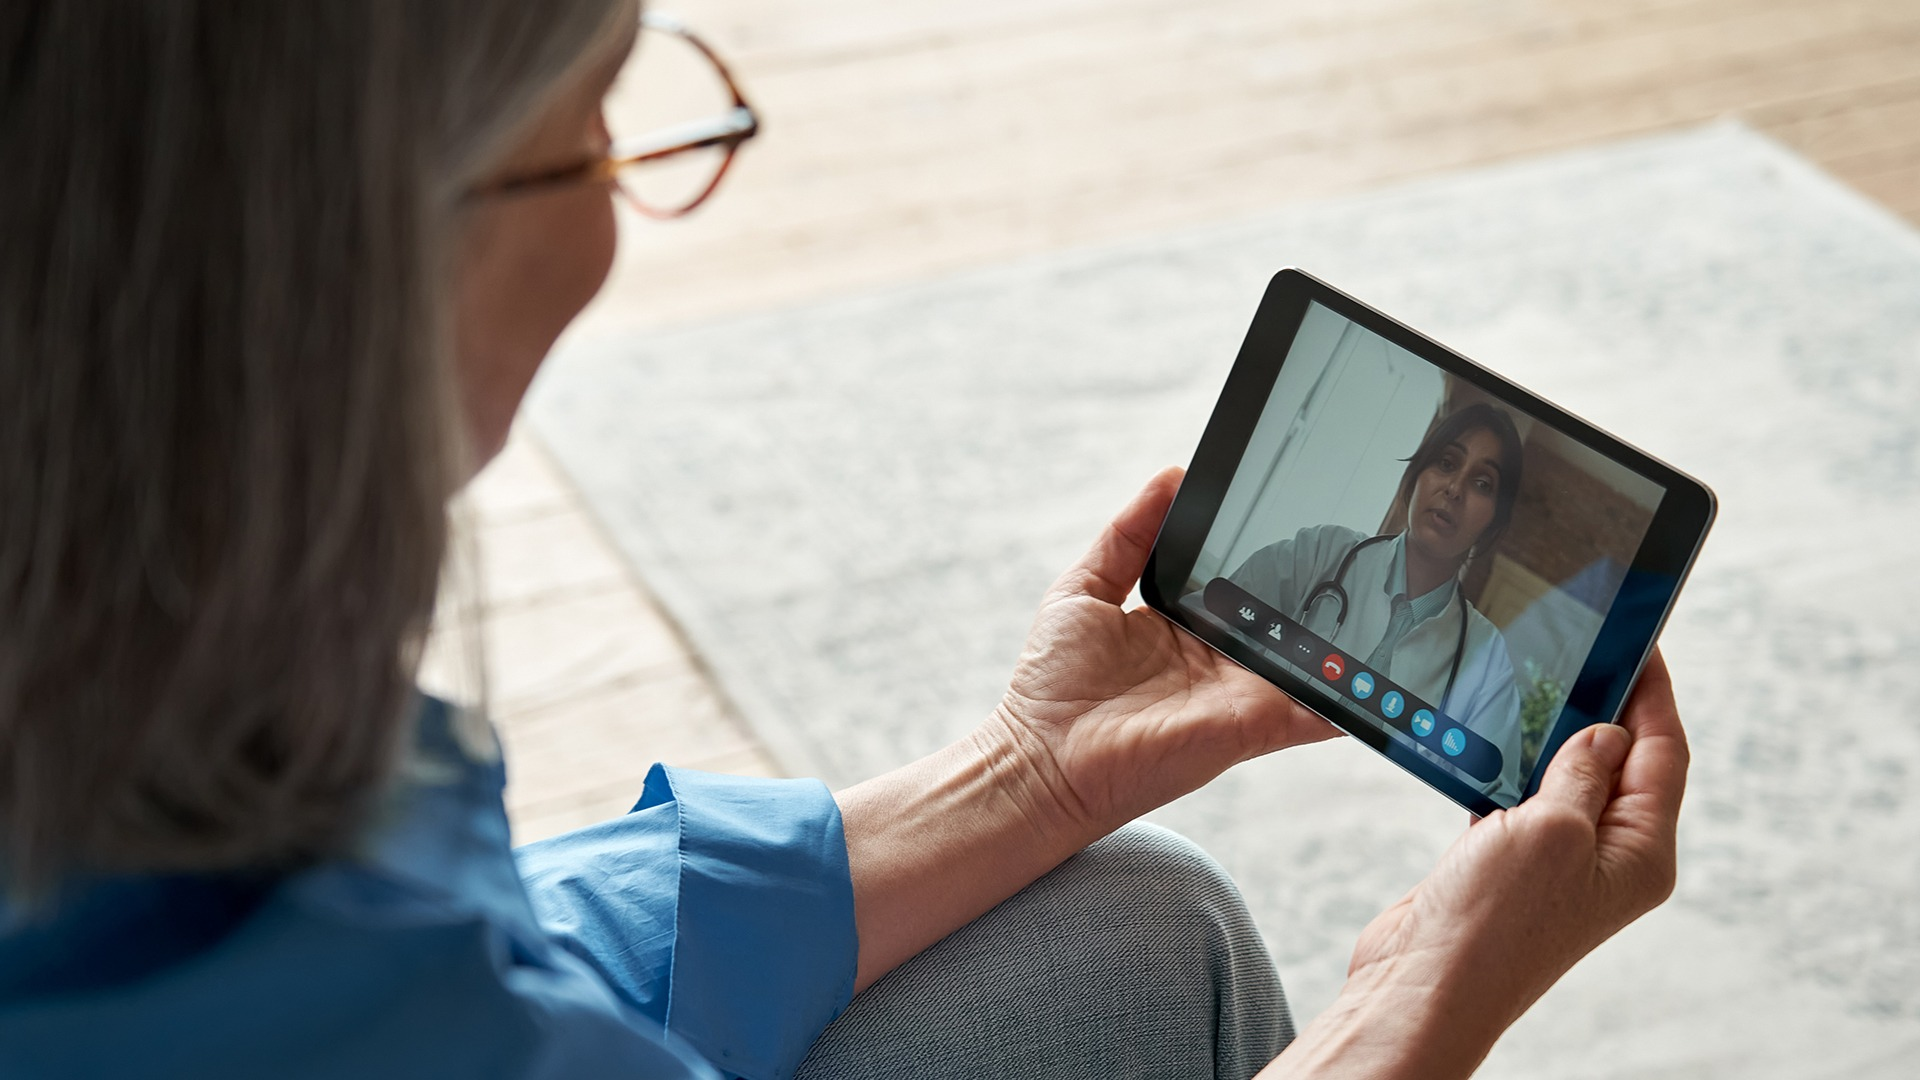 Video visits are video chats with your healthcare provider. In many ways, they're just like in-person visits – but from the comfort of home.